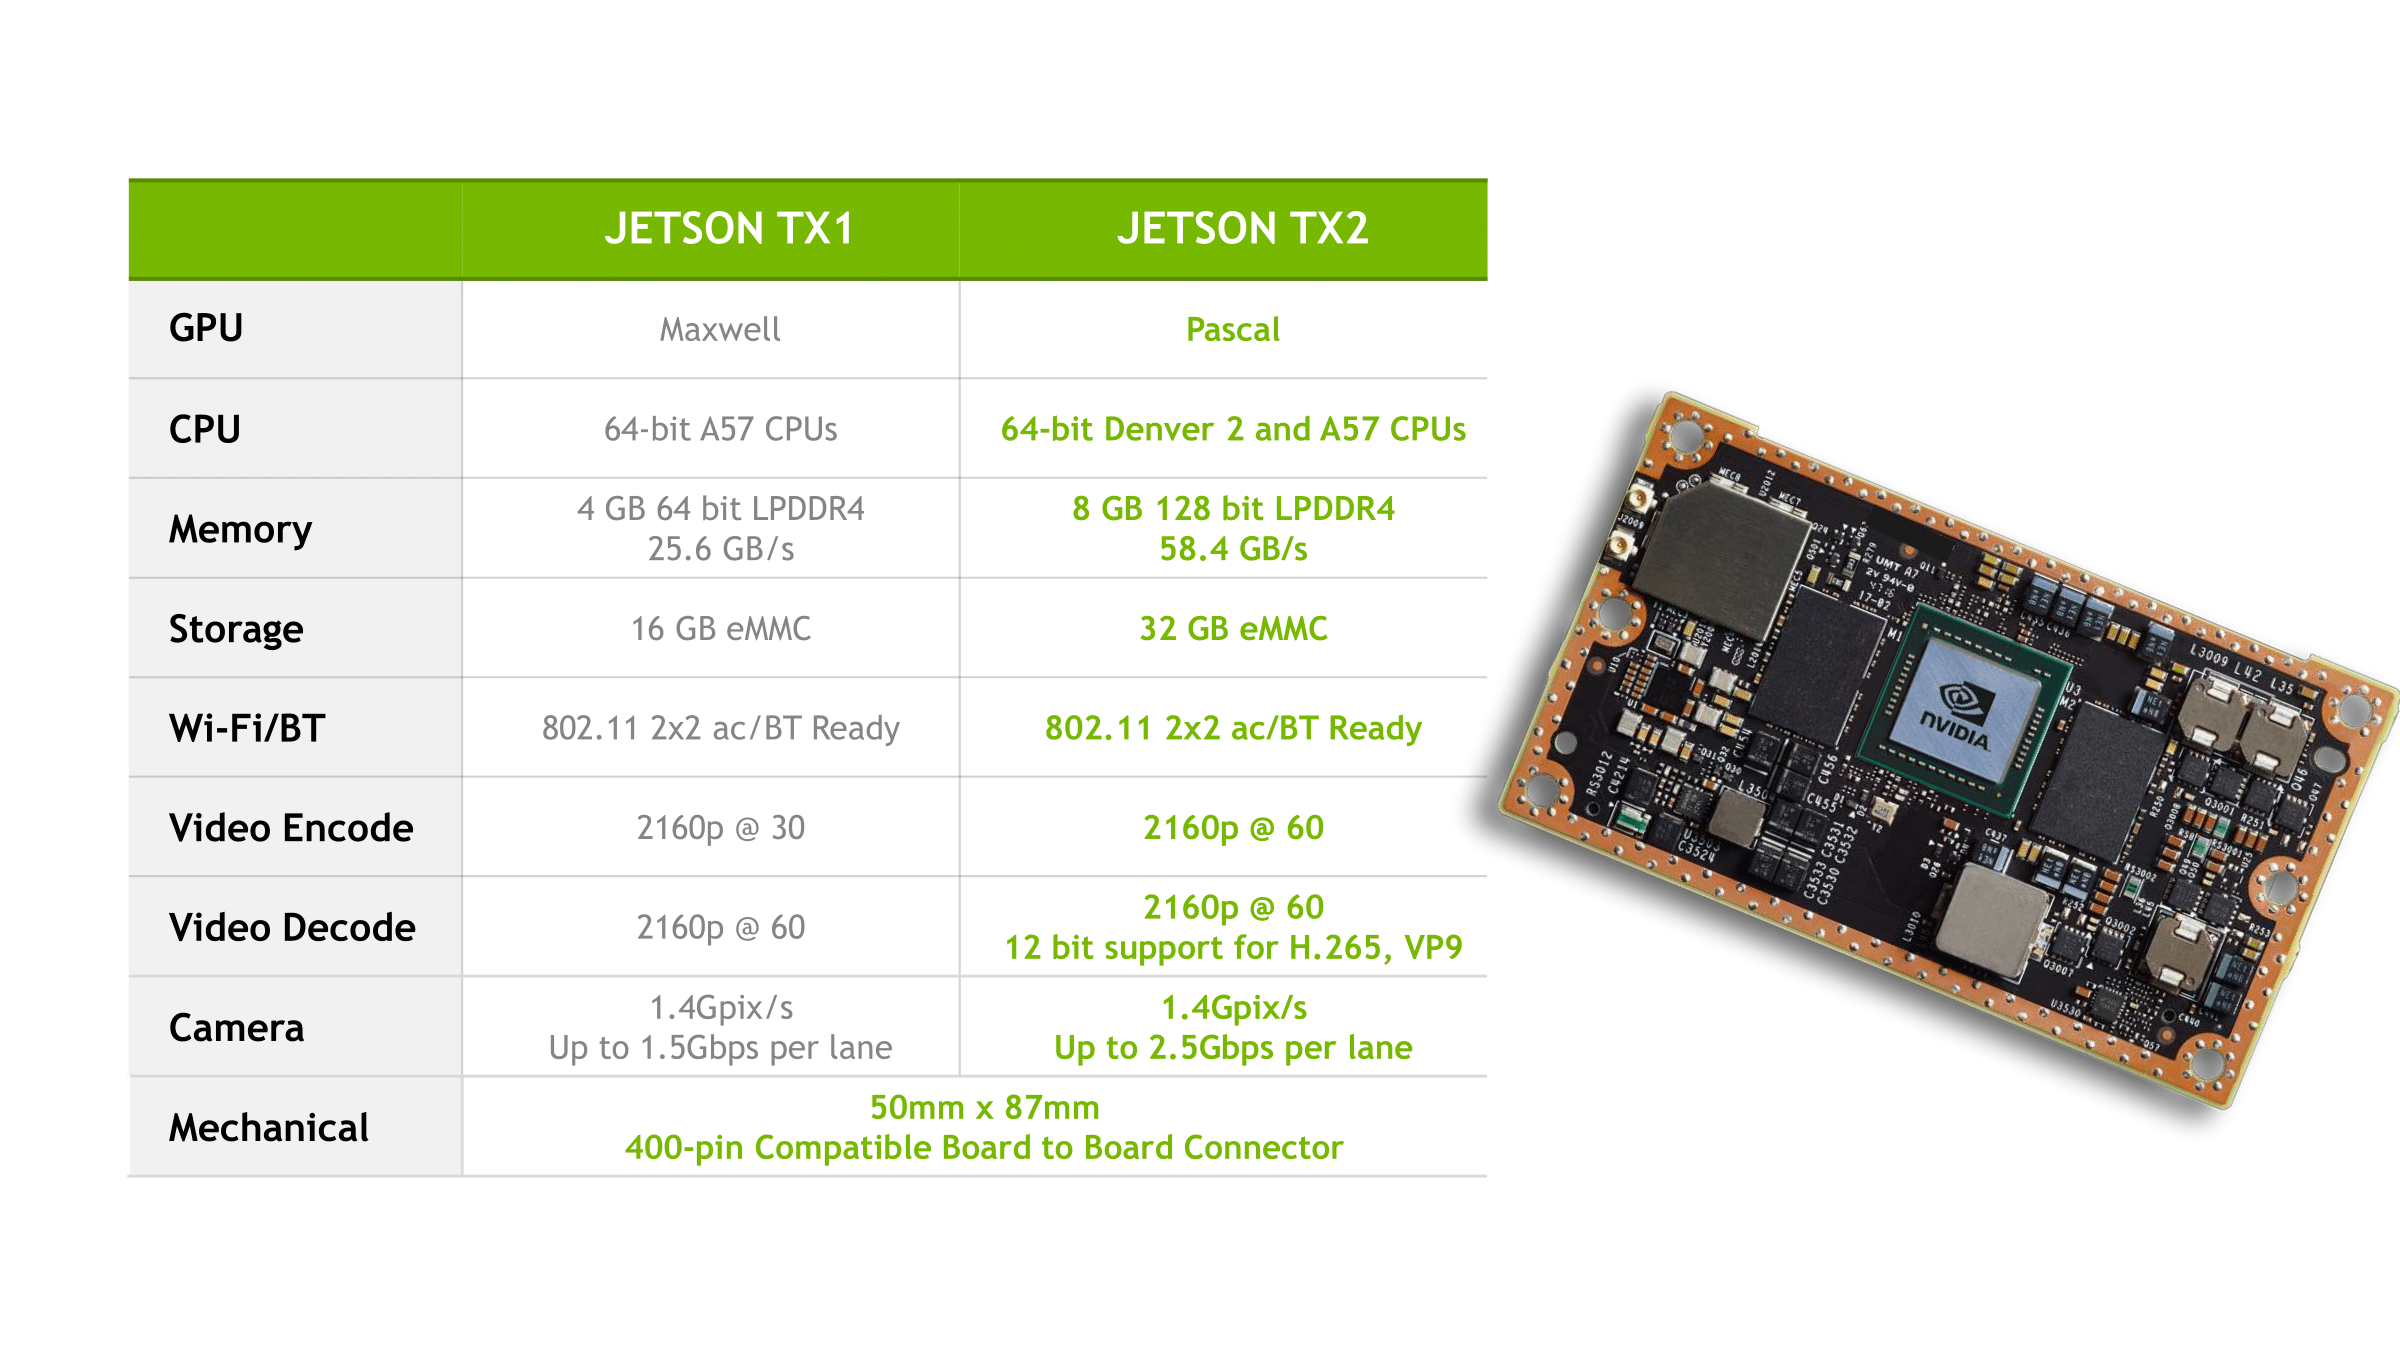 Nvidia launches the Jetson TX2